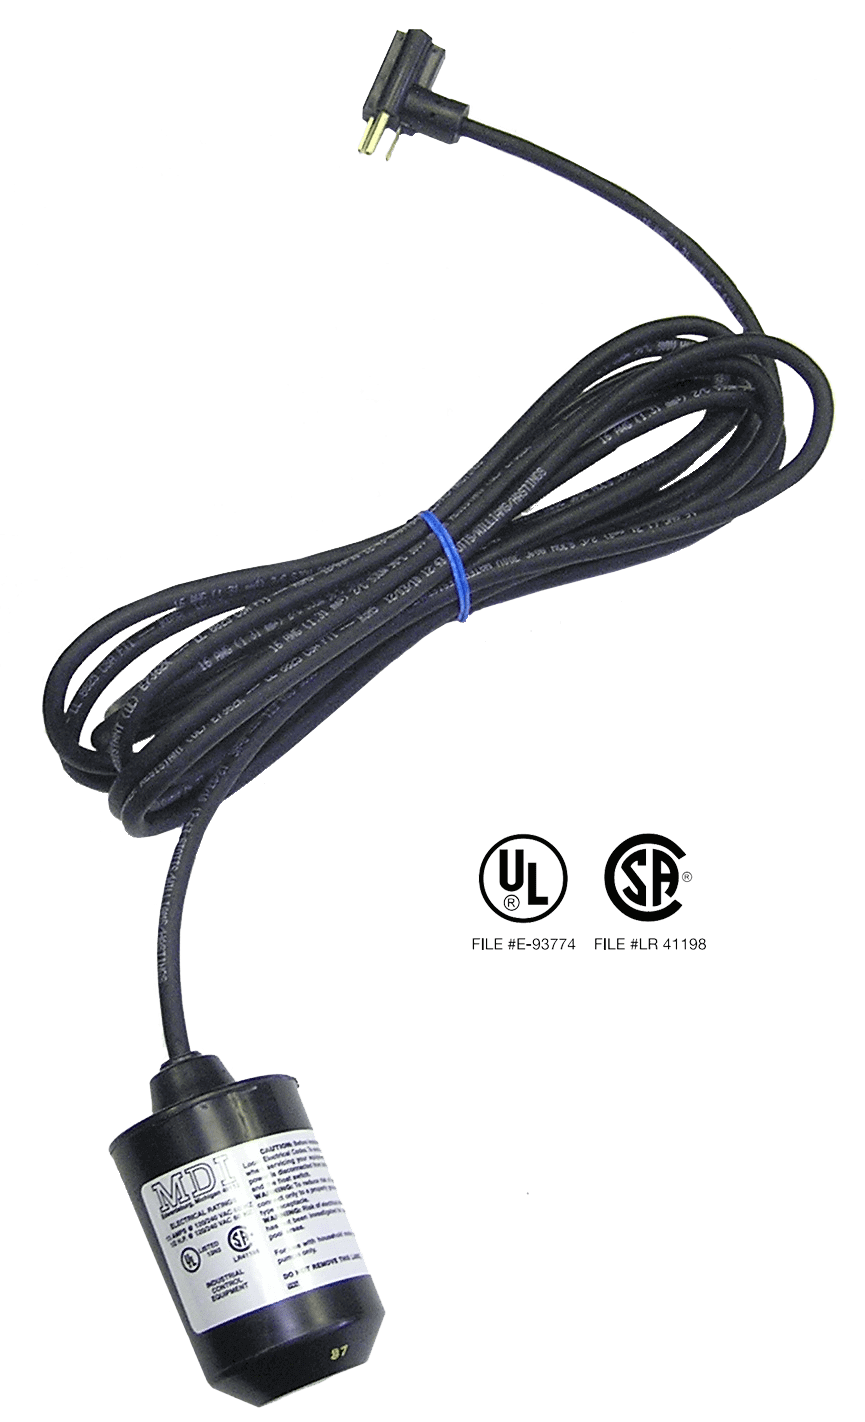 Champion Sump Pump 1 3 Hp 115 Vac 20 Foot Cord 42 Gpm Float Switch Wiring Click To Enlarge